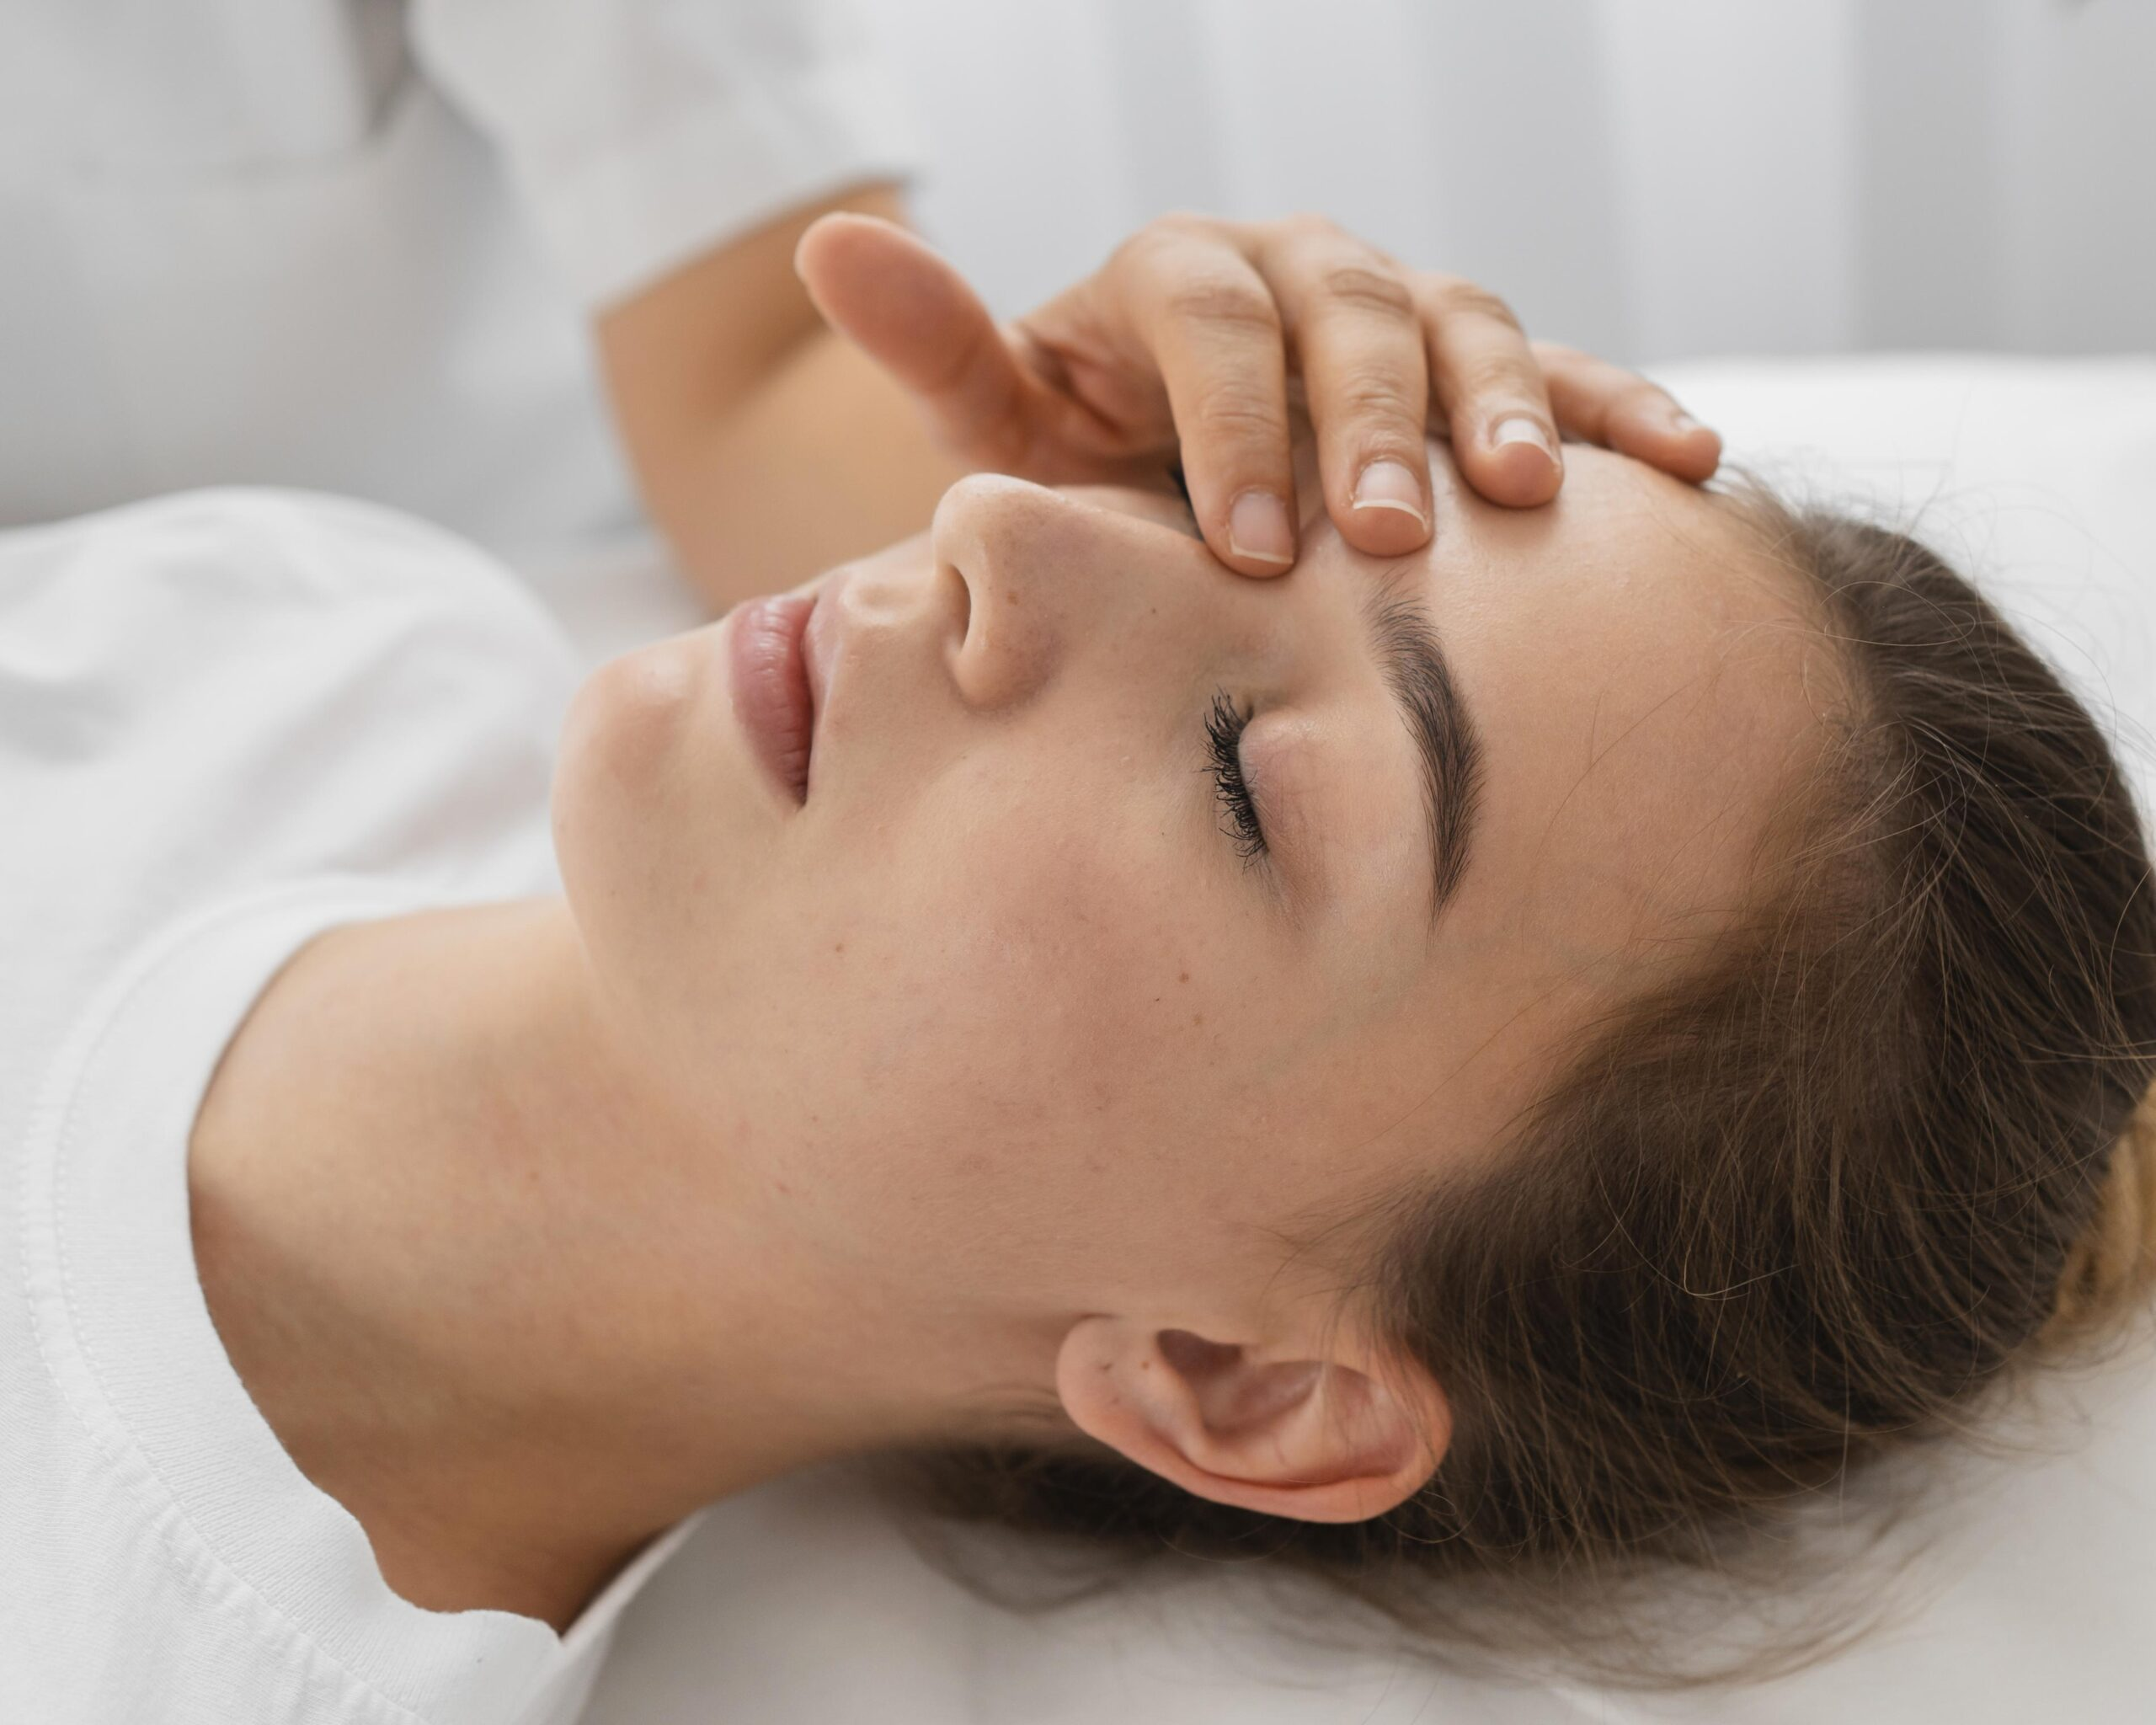 osteopathist-treating-female-patient-by-massaging-her-face-close-up